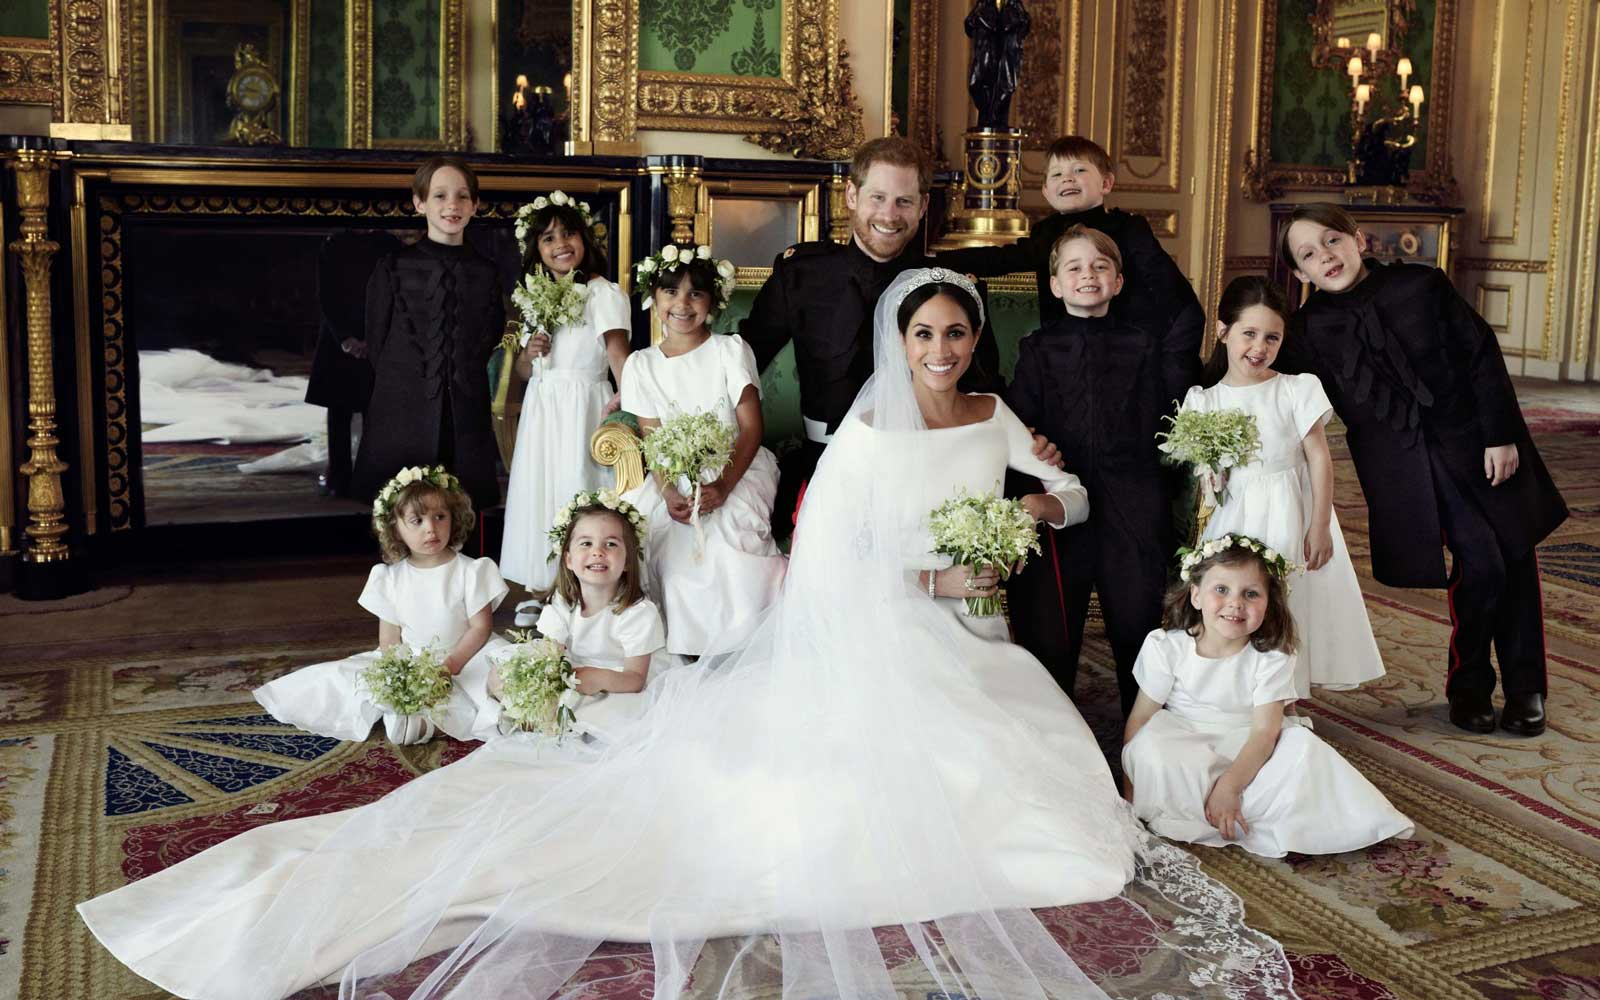 The Royal Wedding Photo 'Mistake' Everyone's Talking About Is Actually Not a Mistake at All